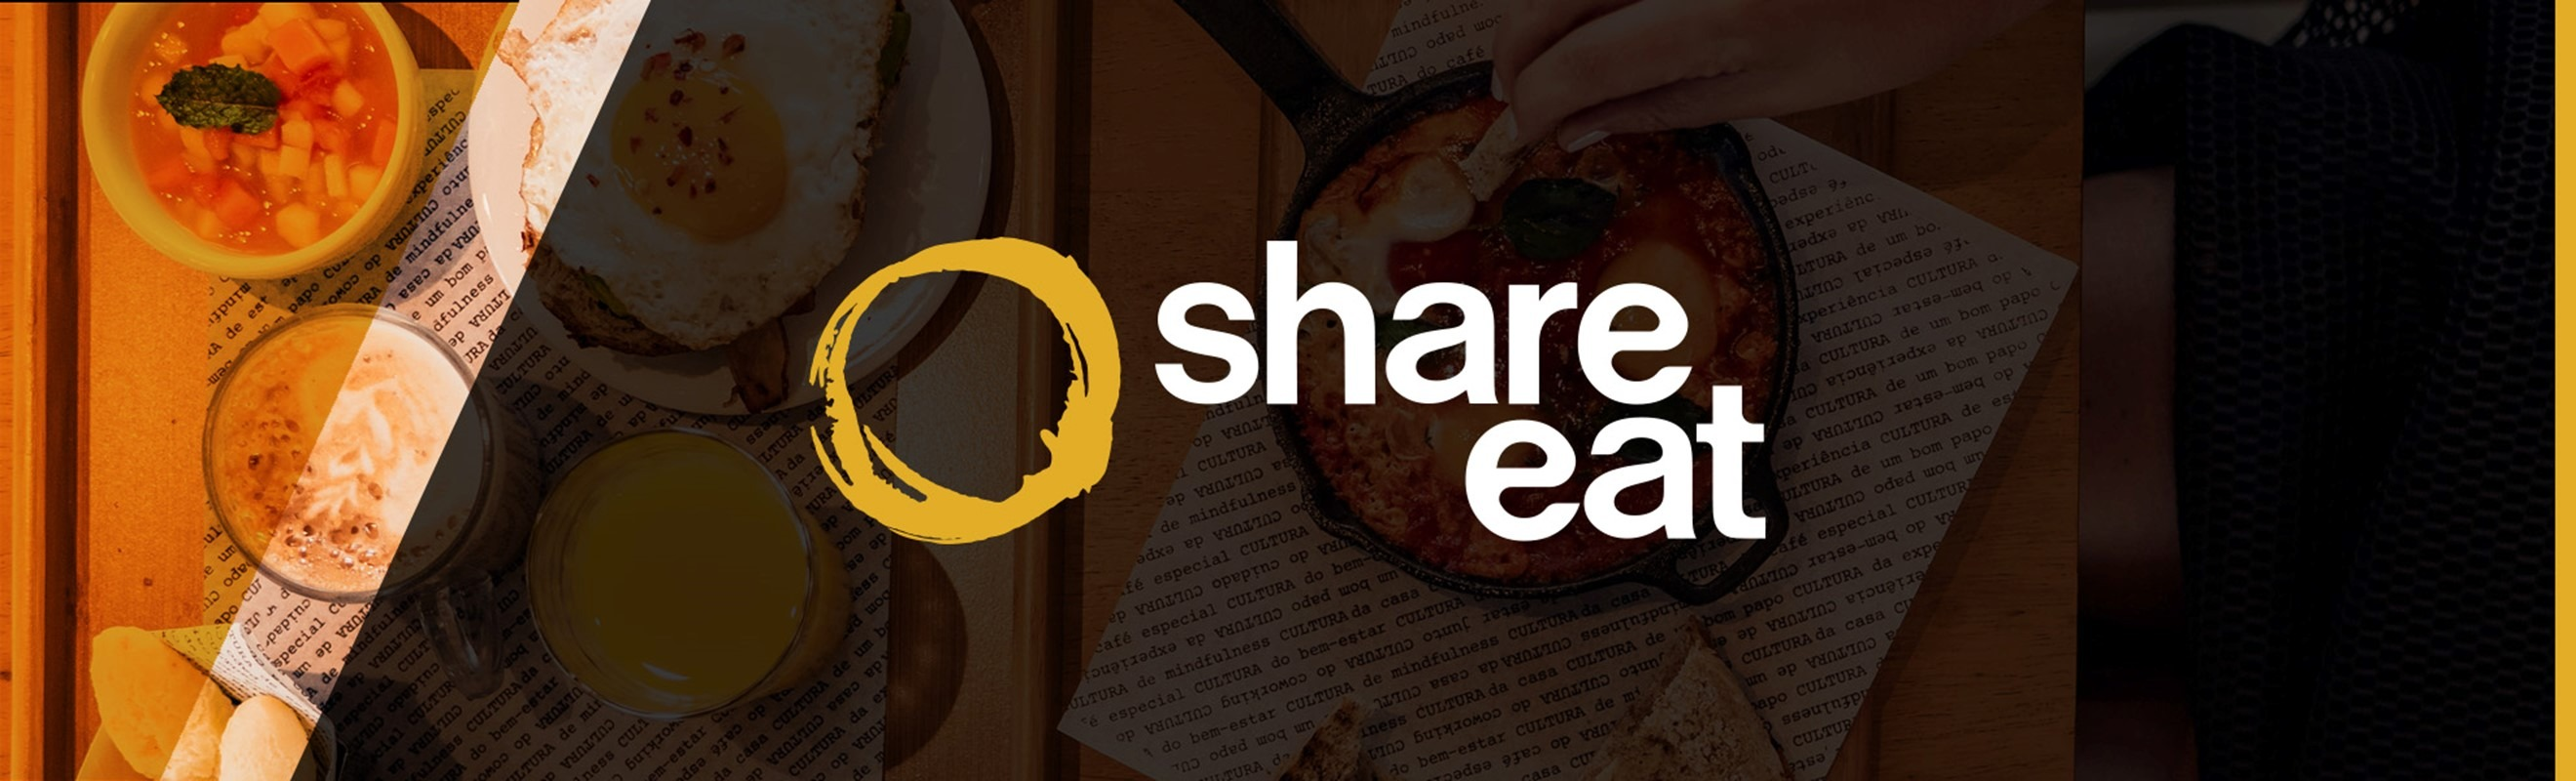 Product Owner [Share eat]